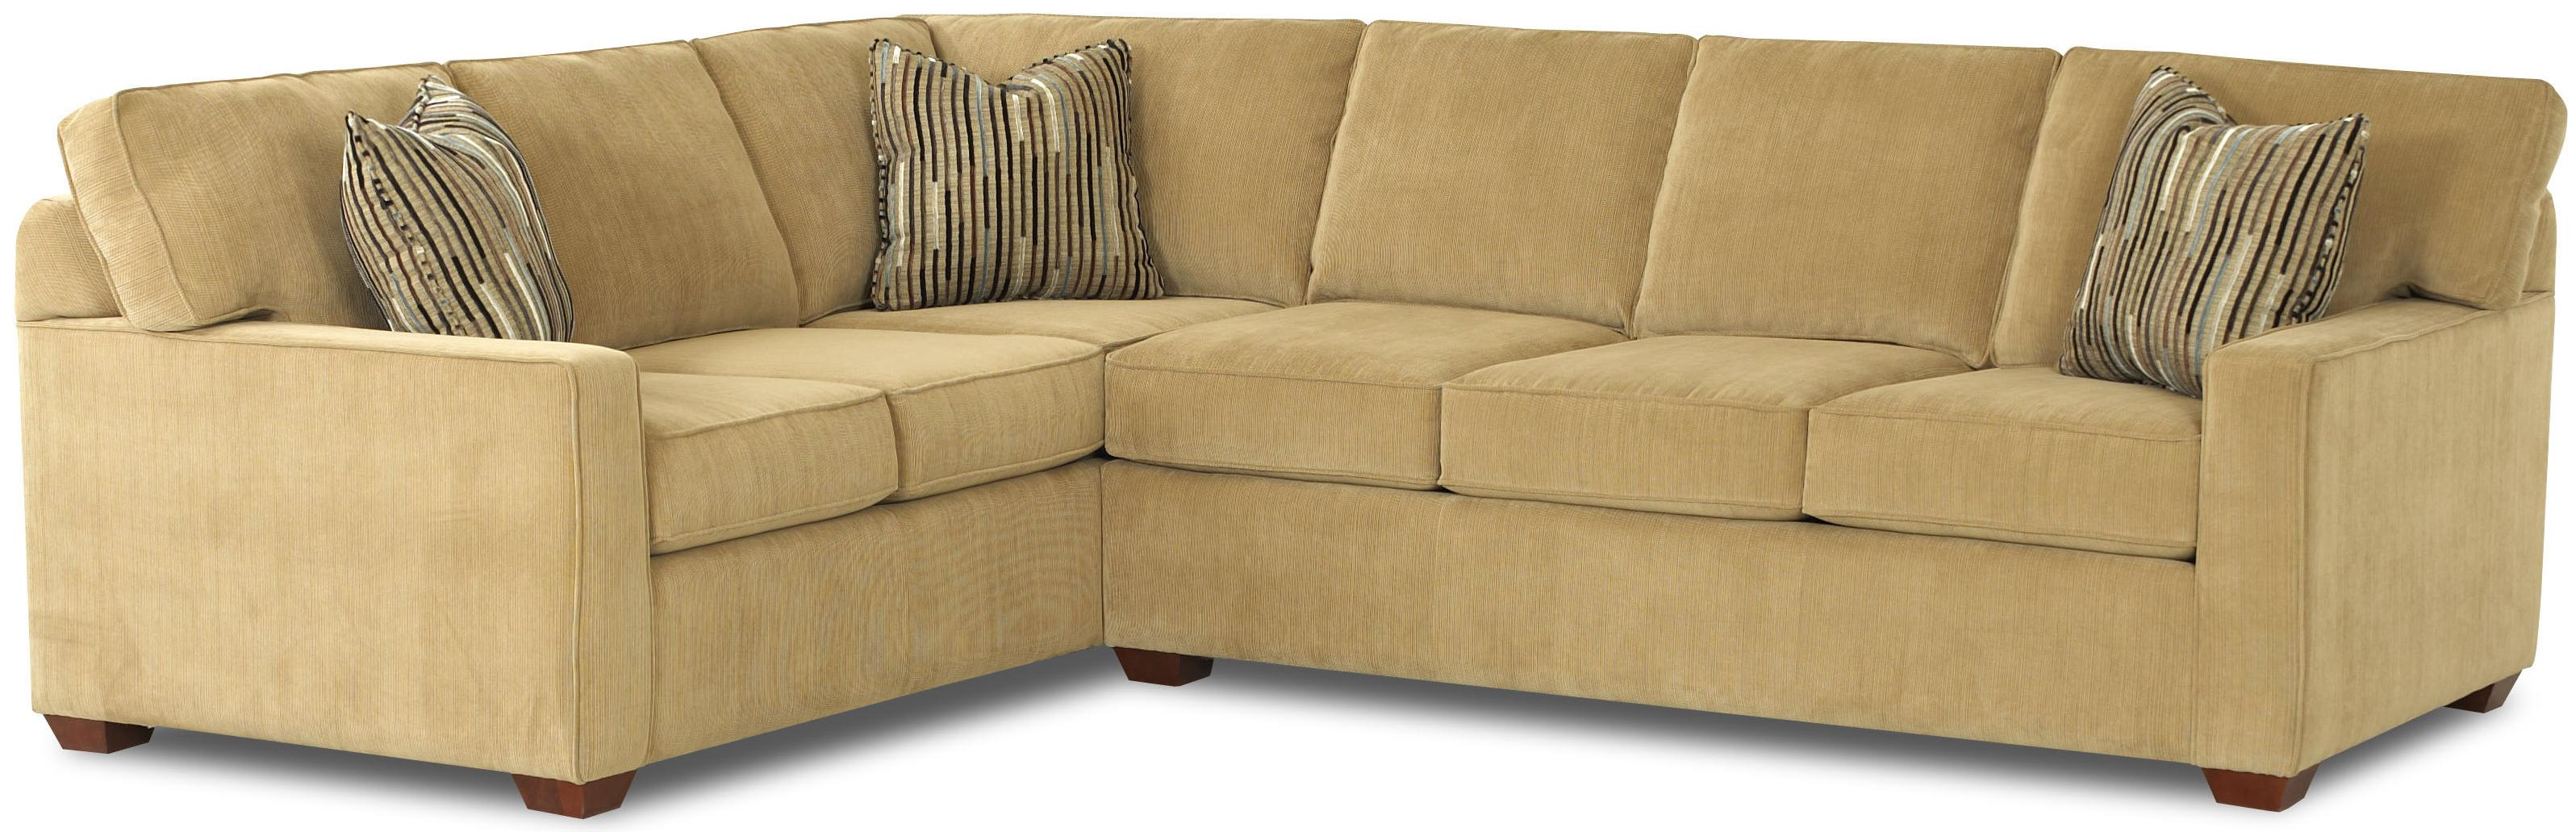 Sectional (not stocked in facbric shown)